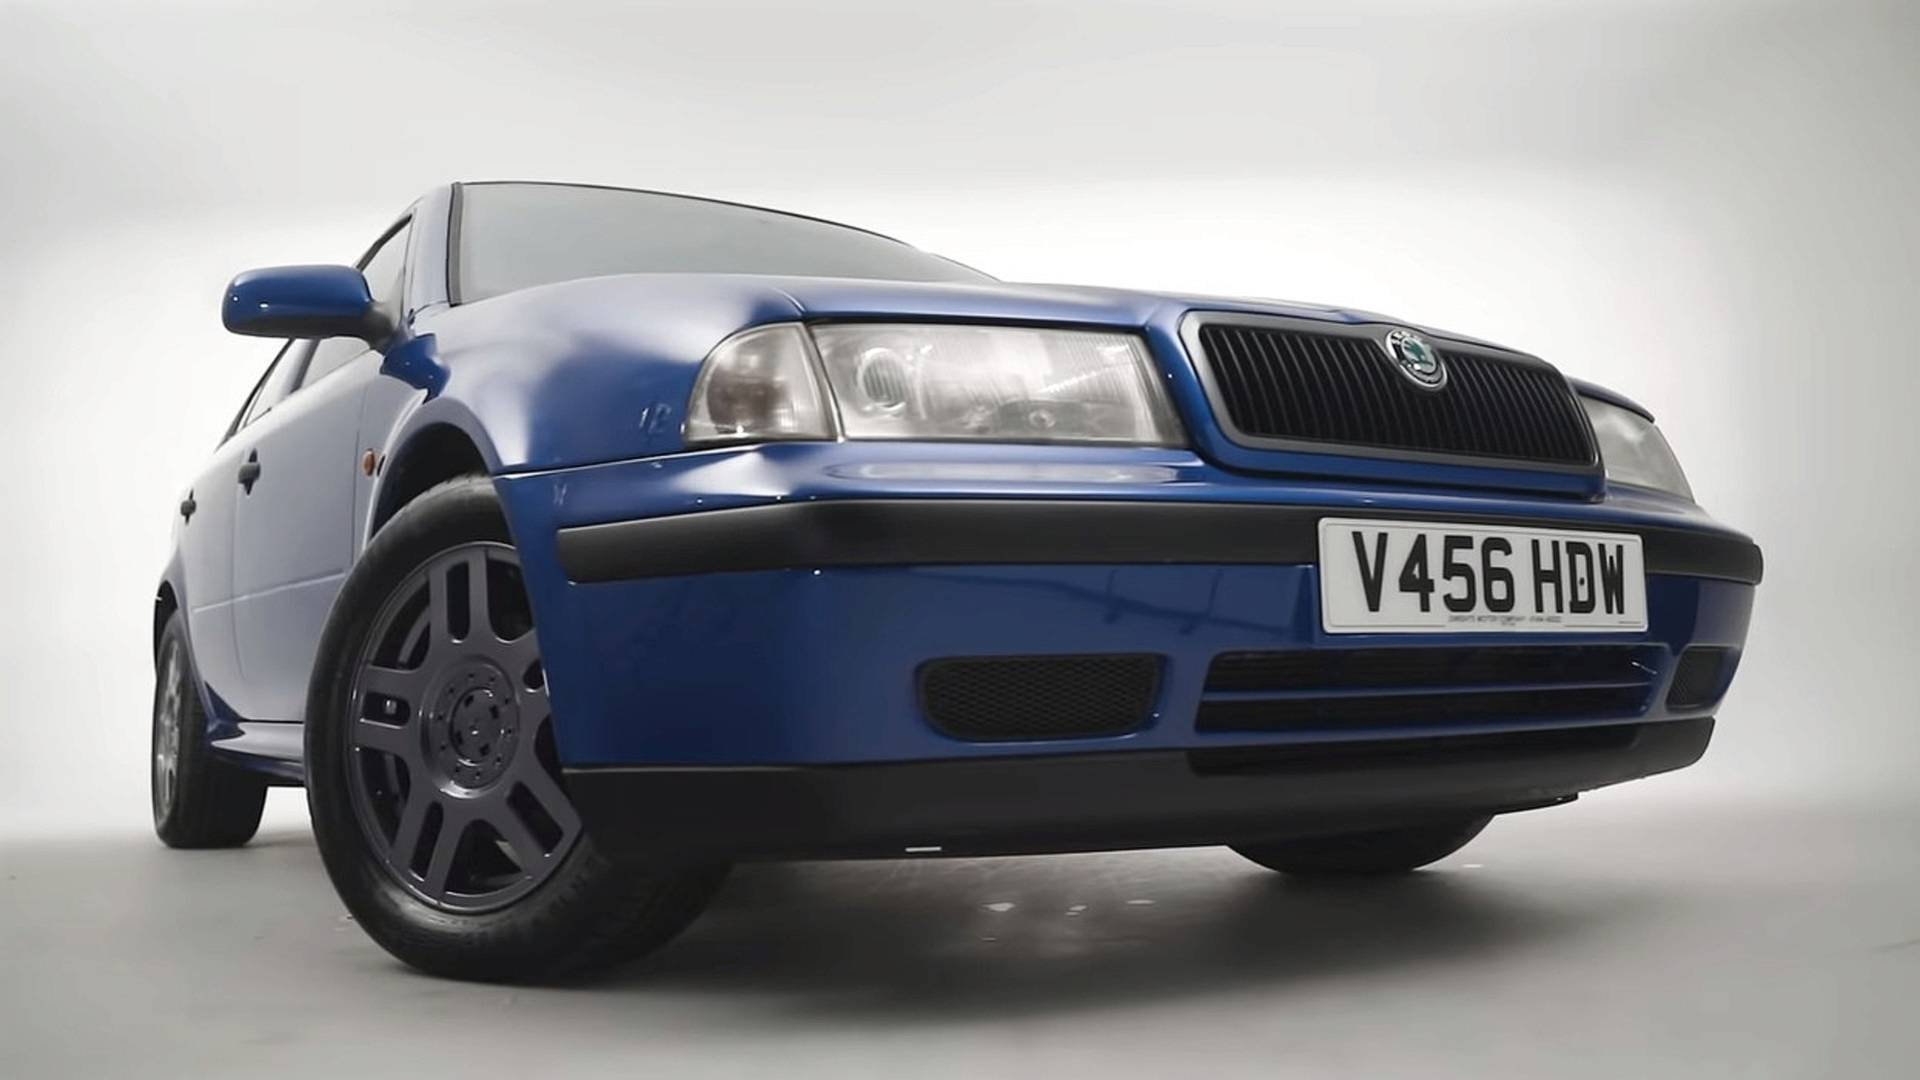 This Is What A 432 000 Mile Skoda Octavia Looks And Feels Like